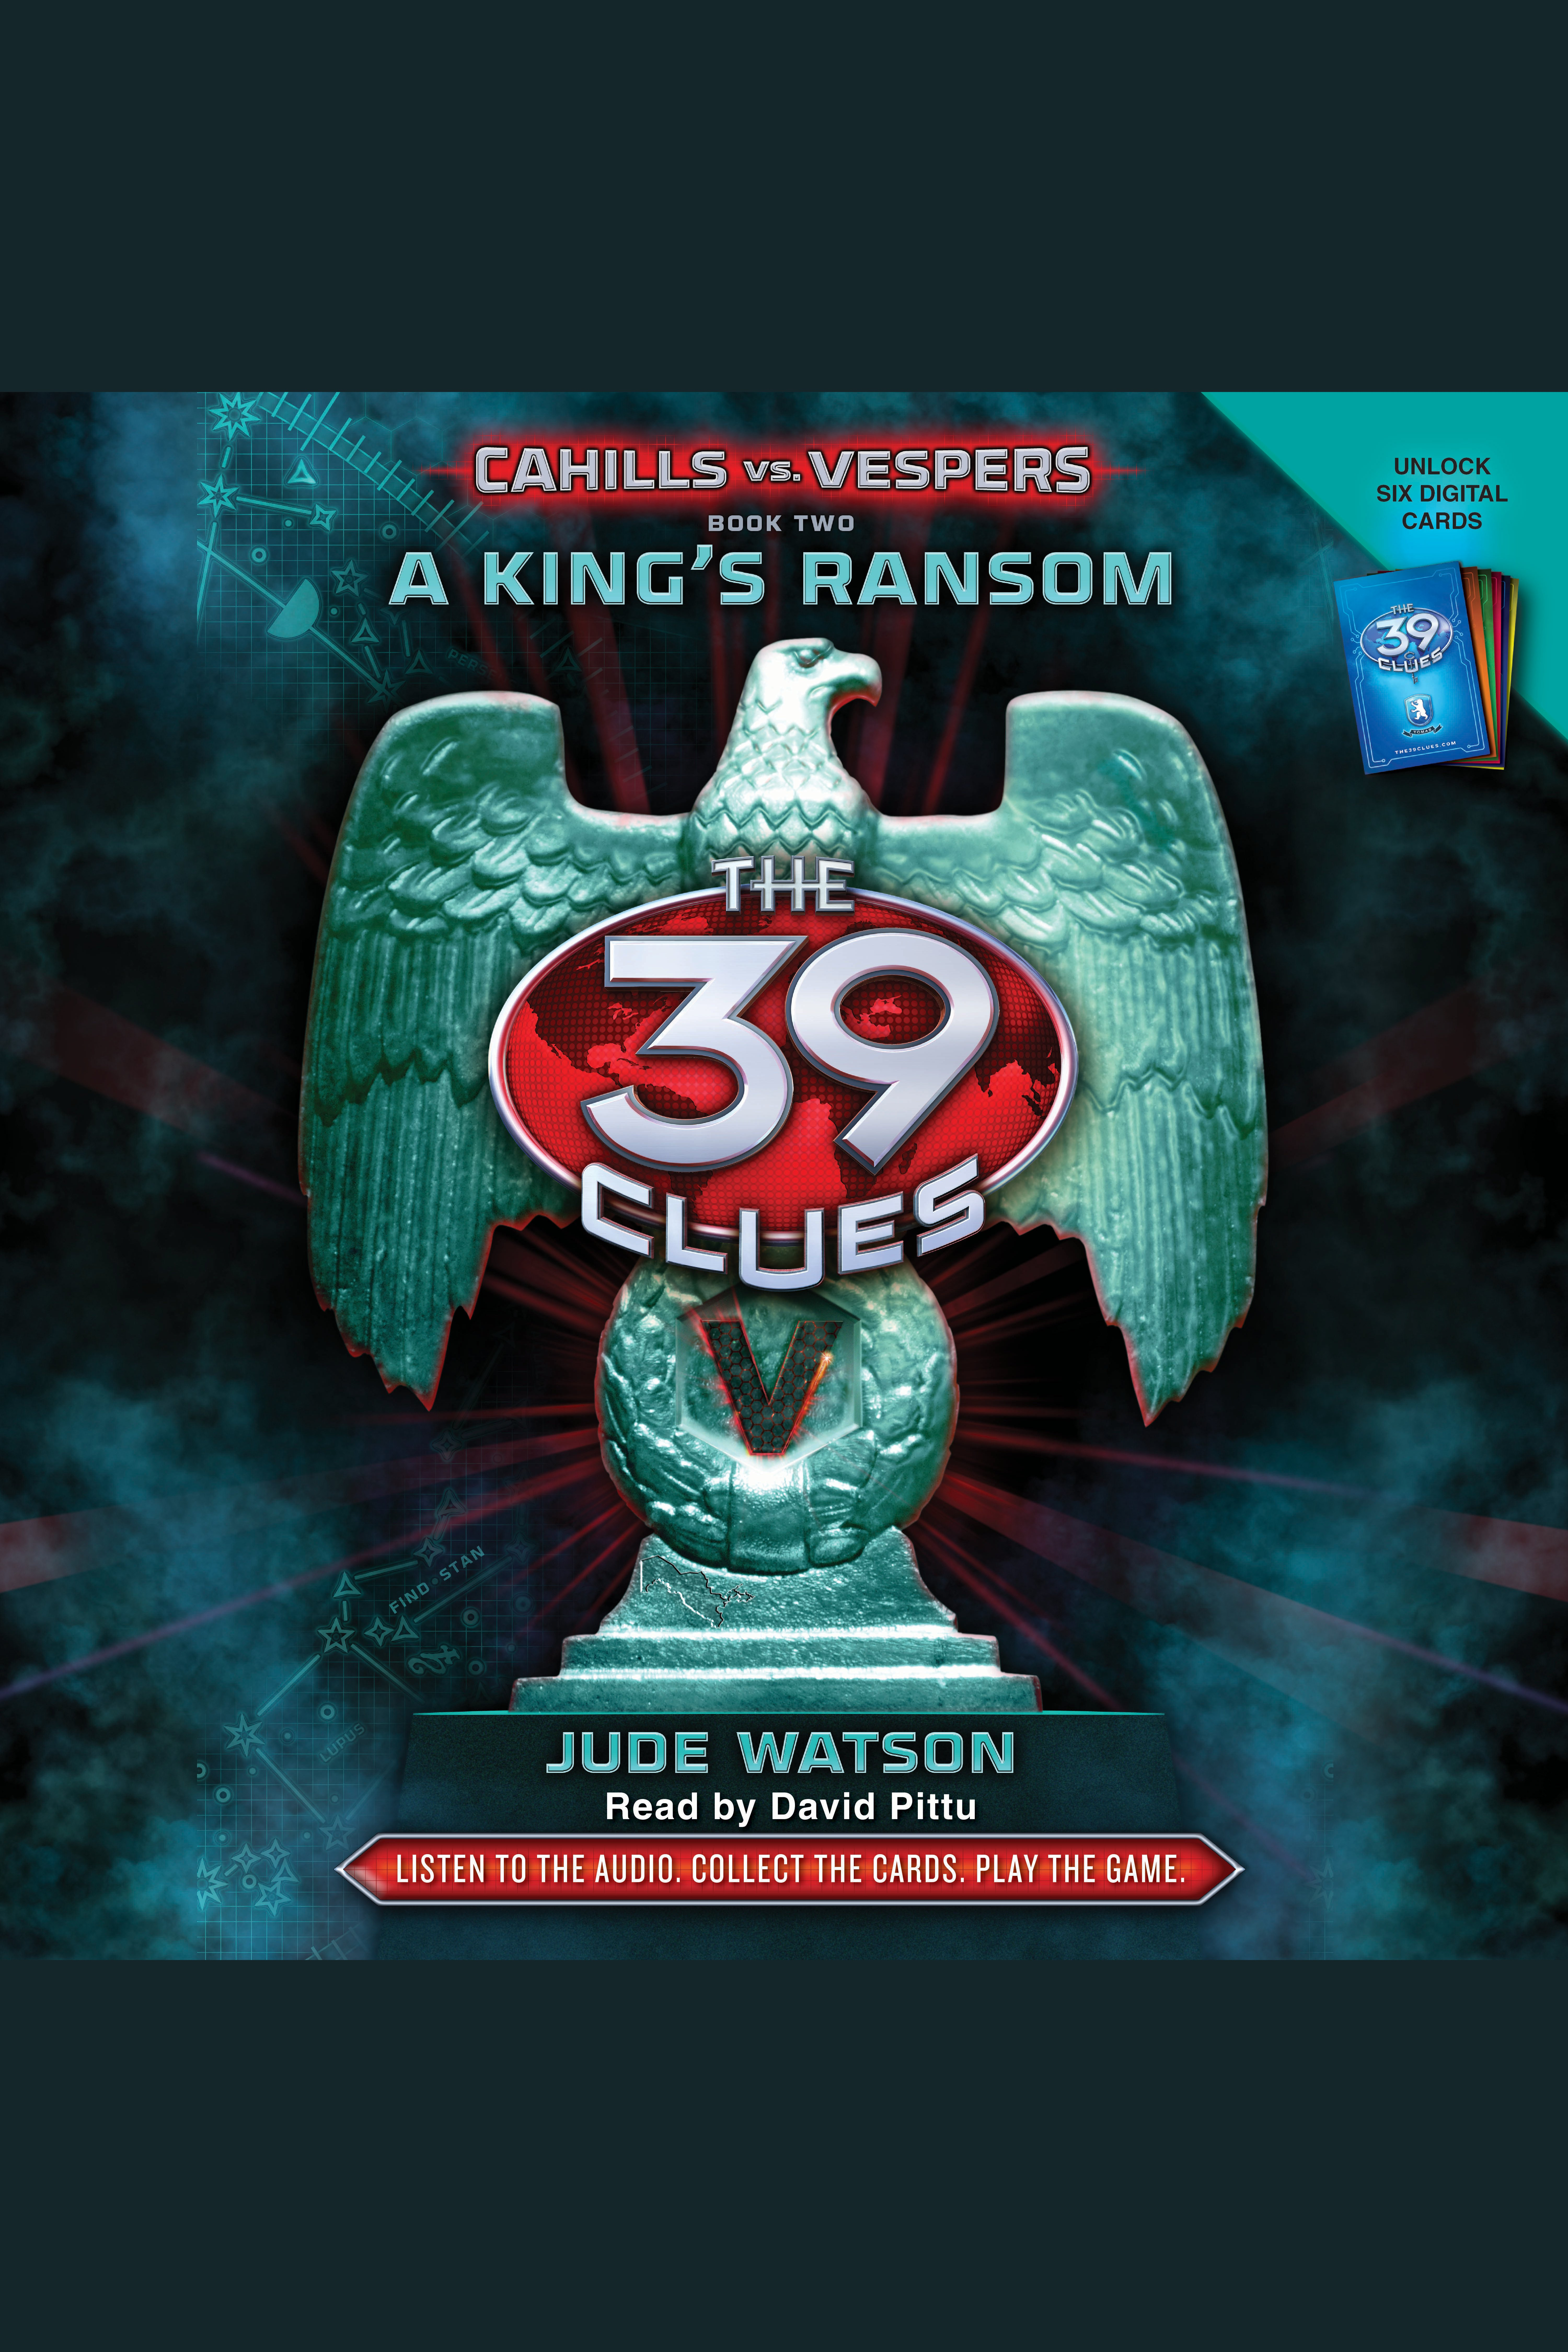 39 Clues cover image